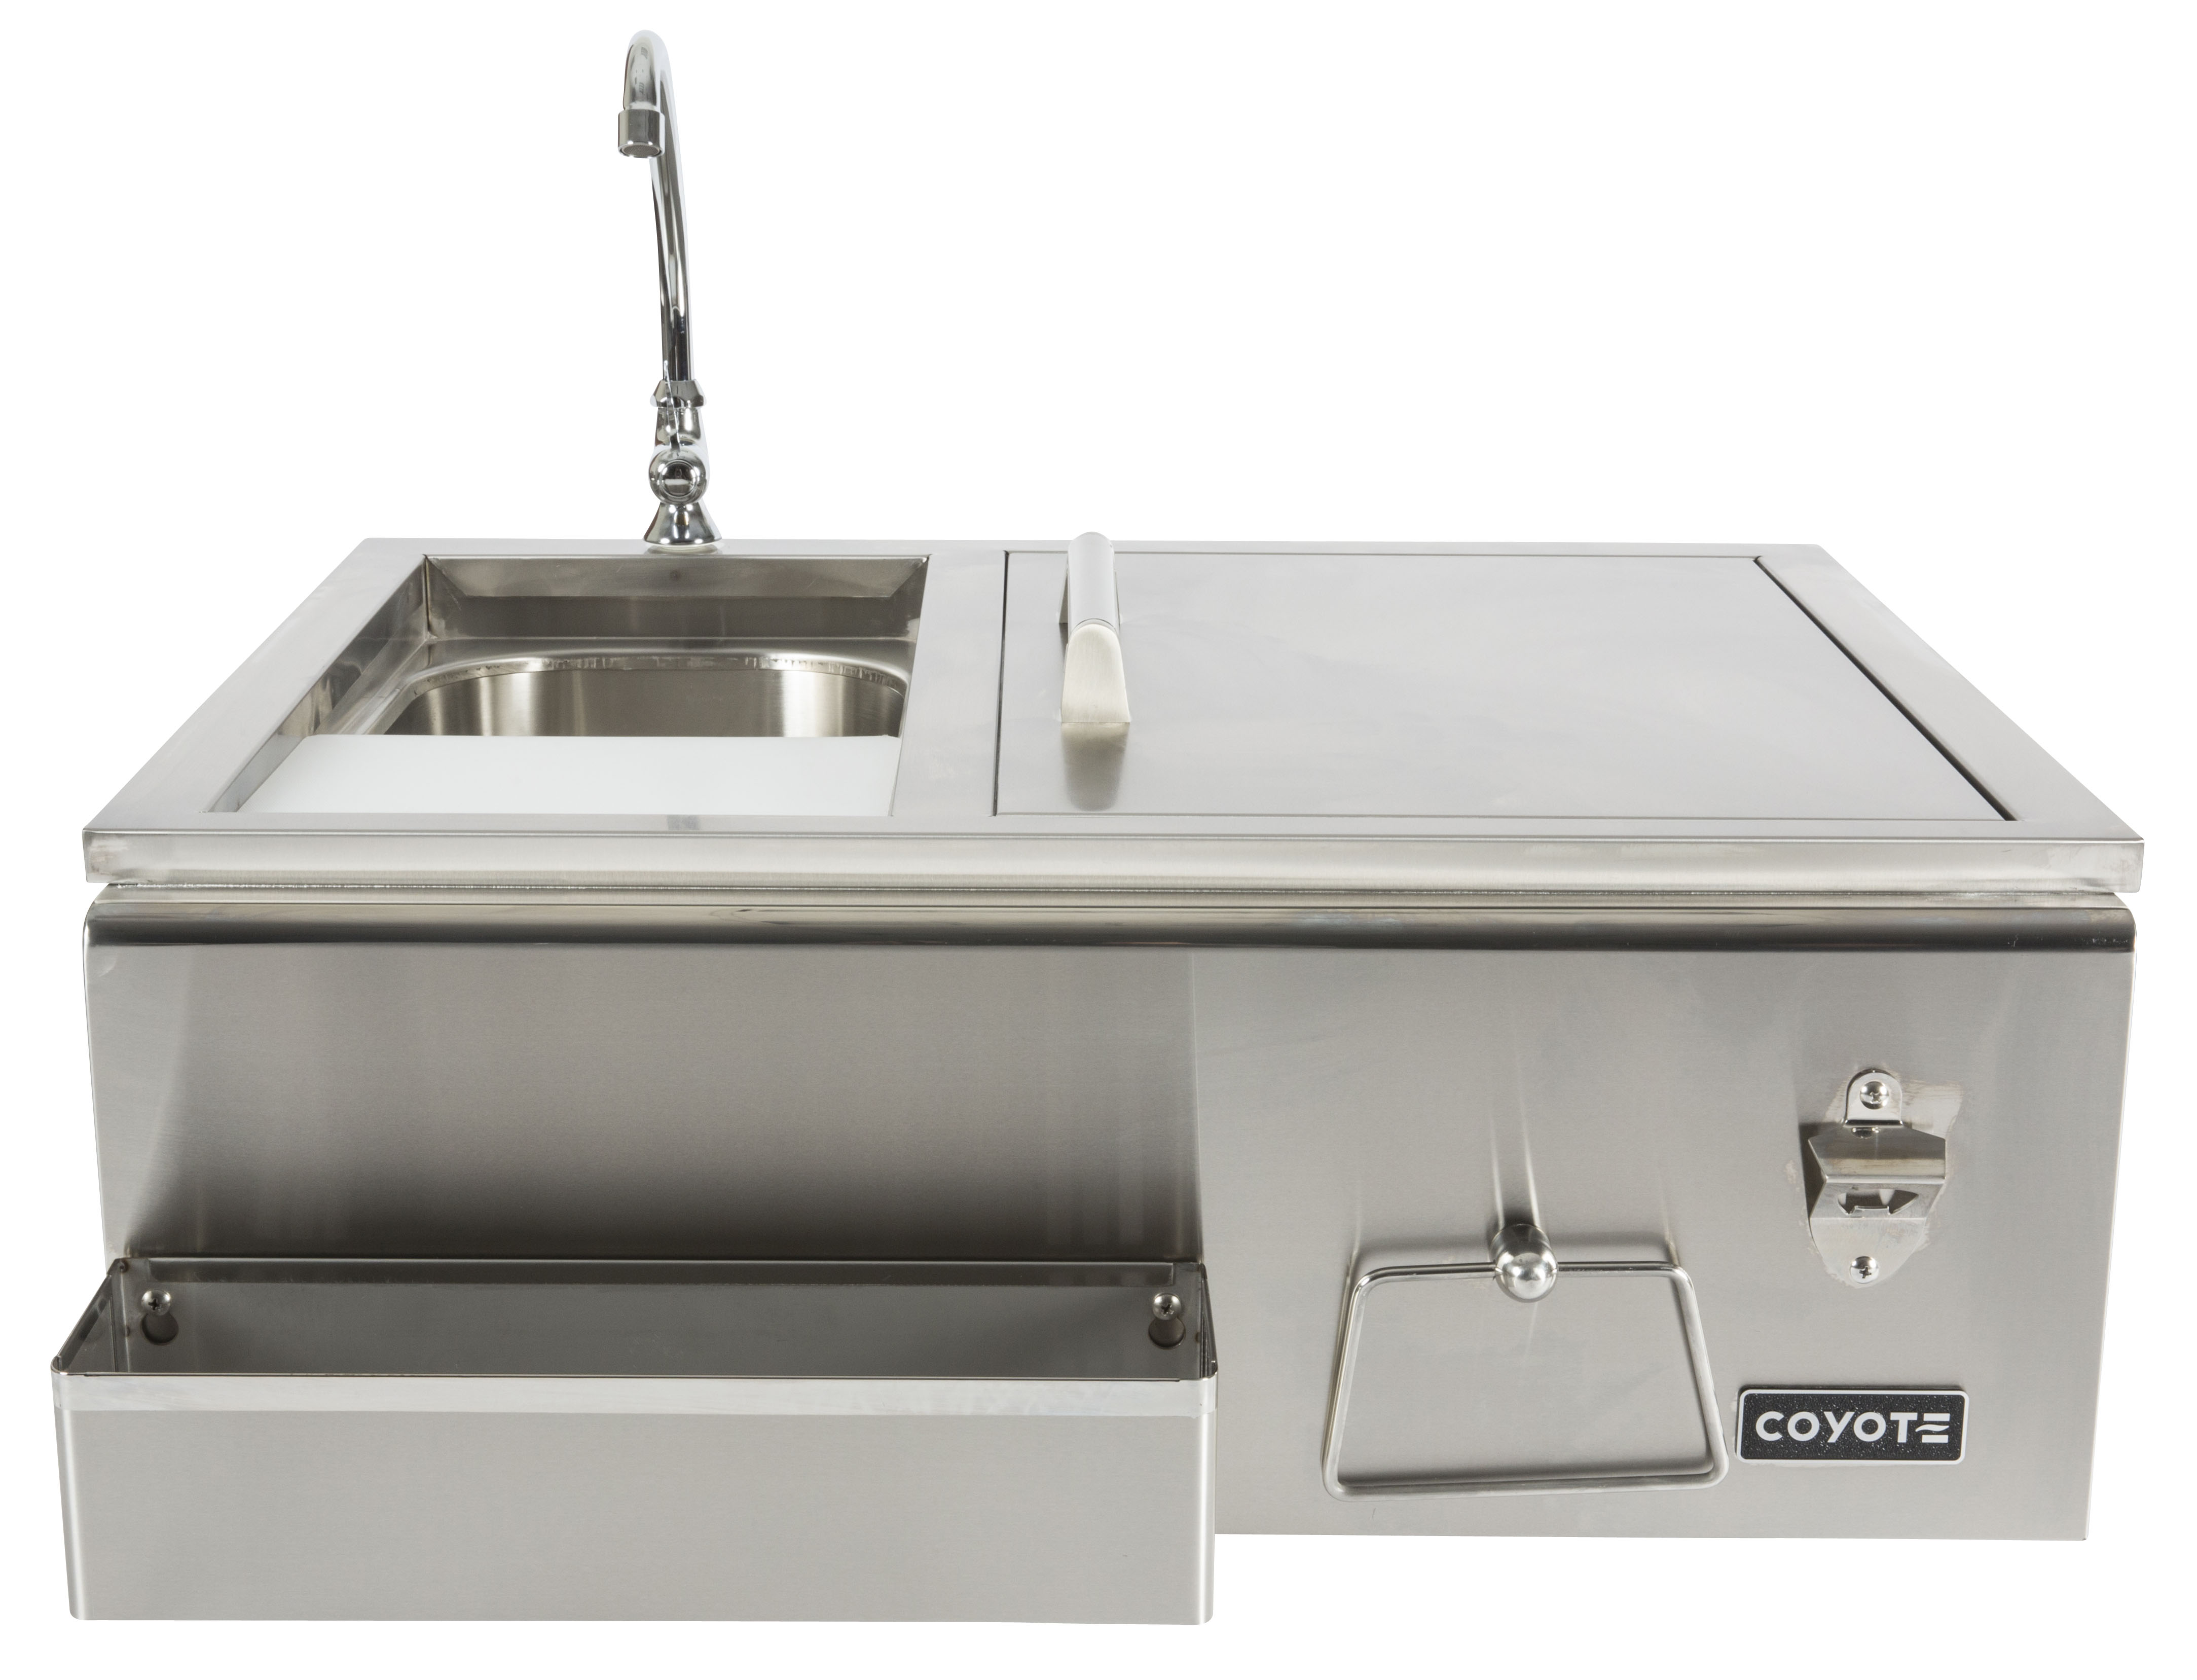 Coyote refreshment center for Coyote outdoor grill reviews